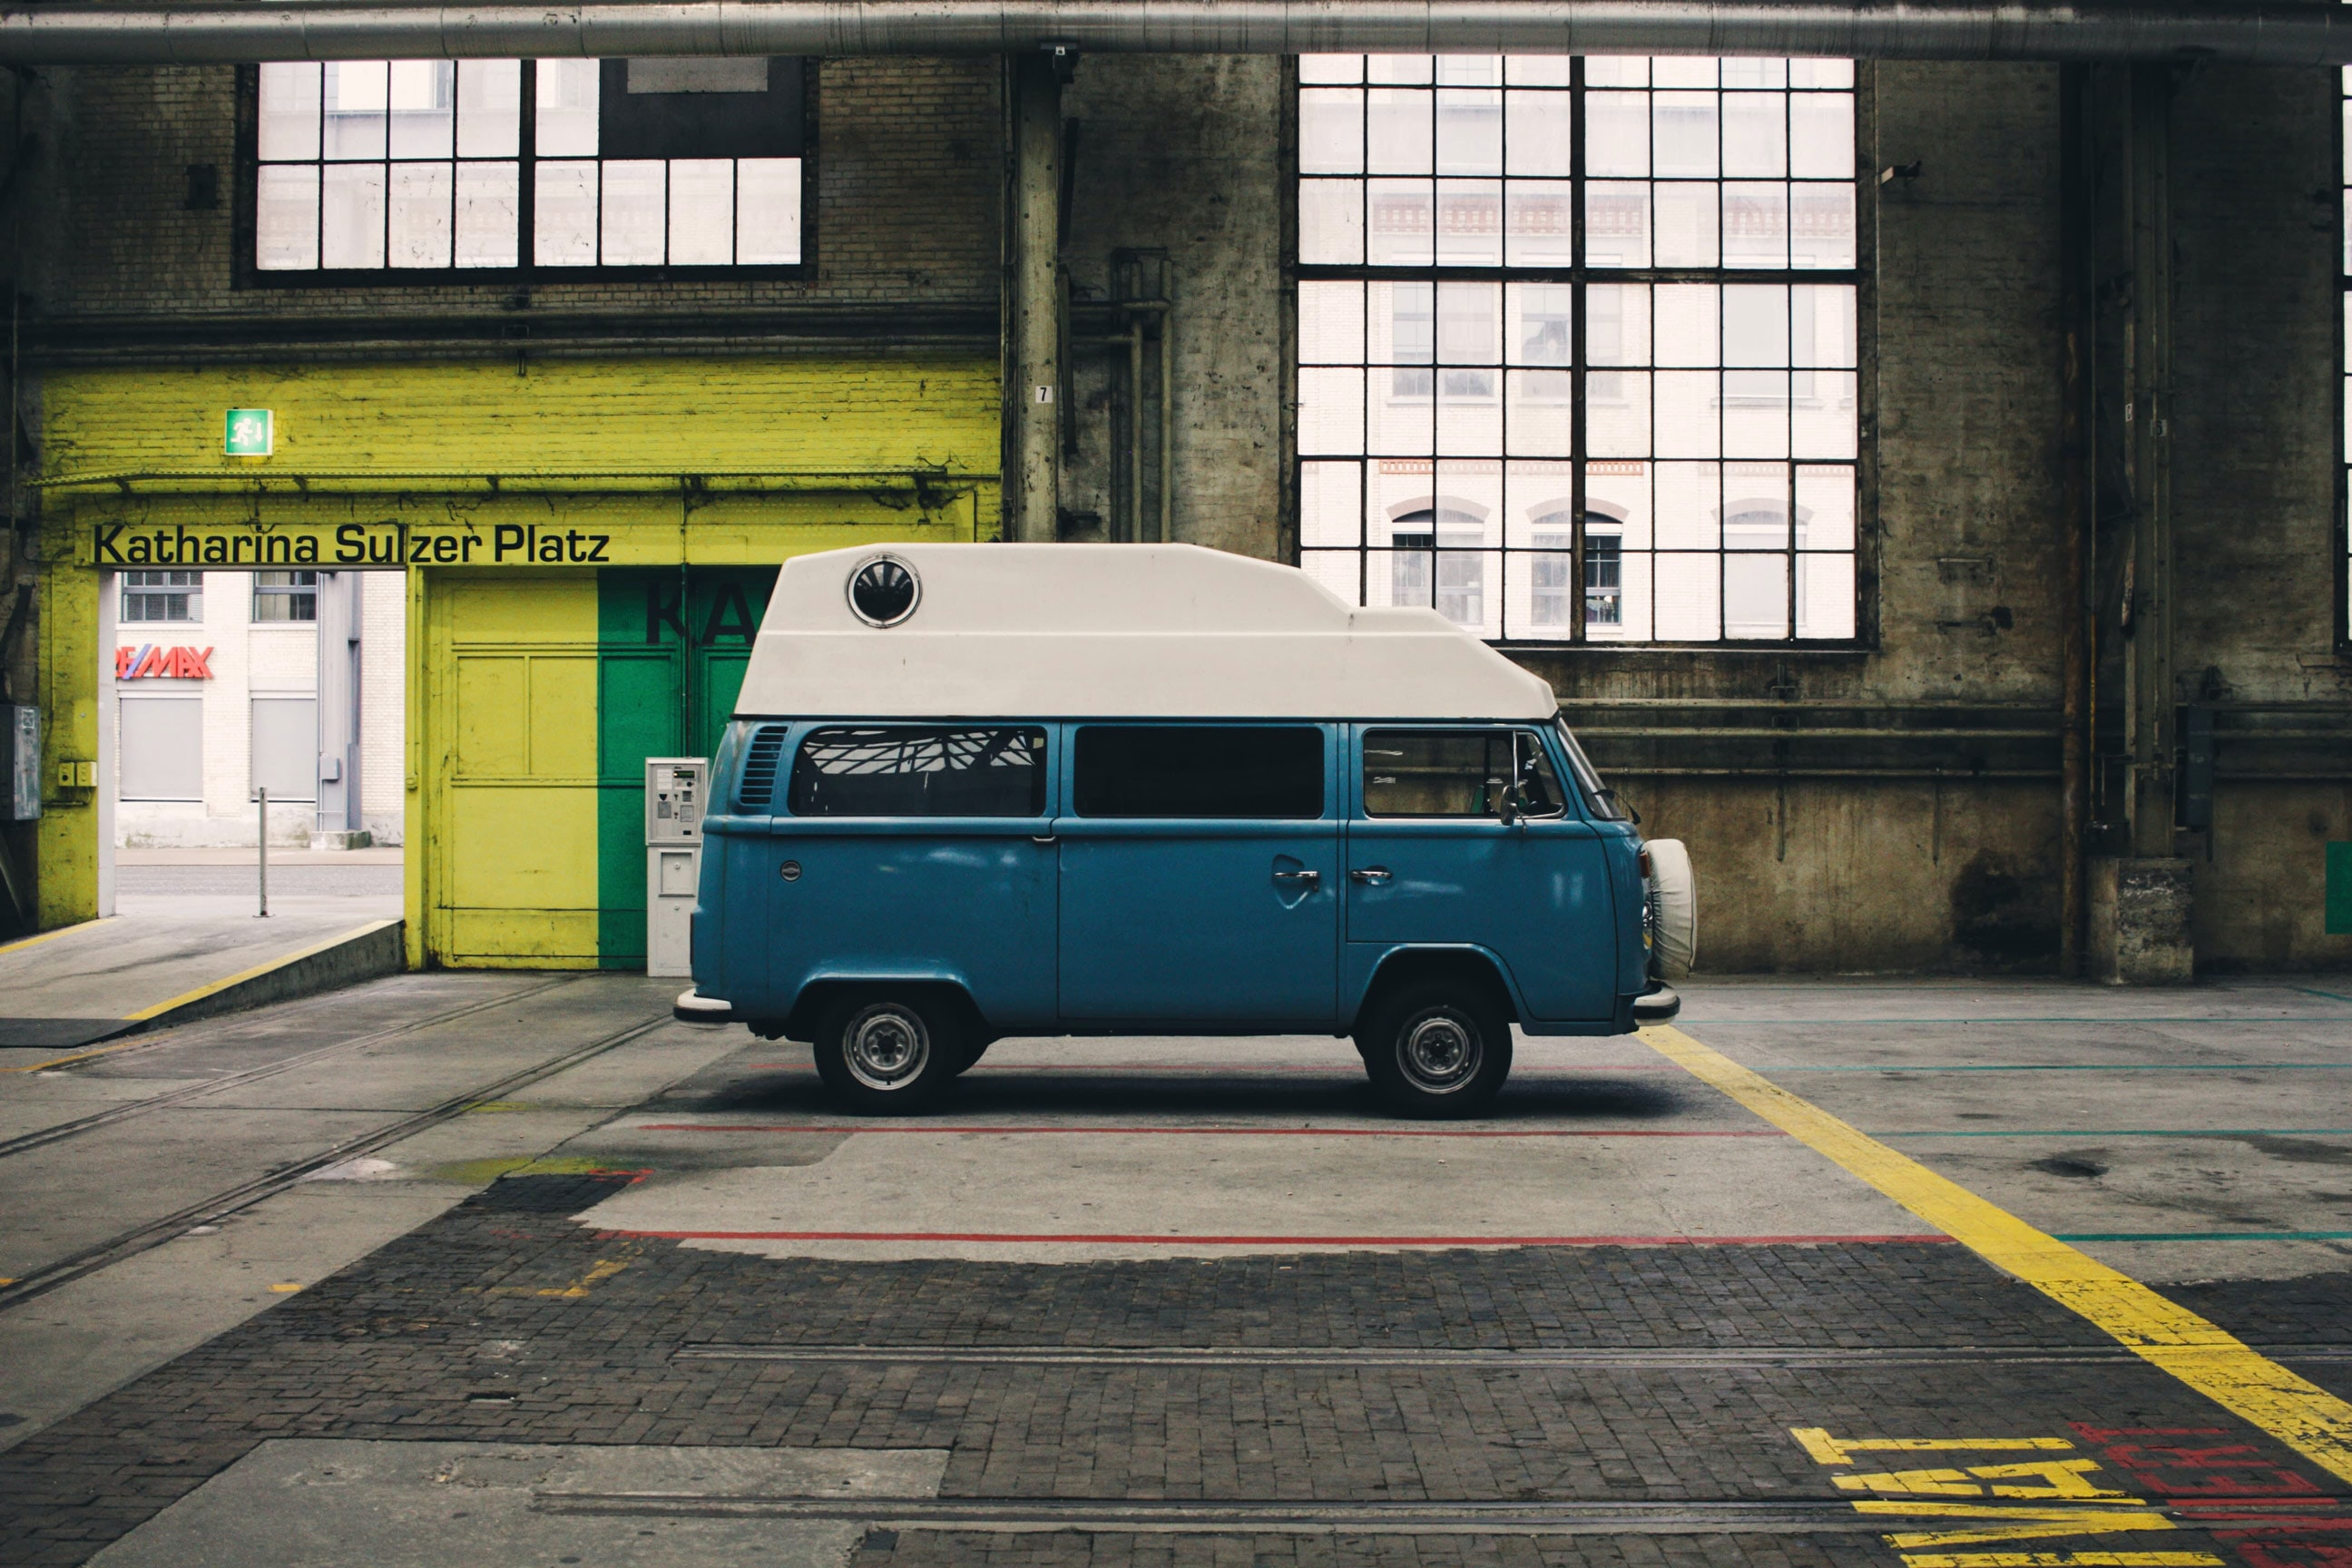 Green van in a dark brick garage labeled Katharina Sulzer Platz